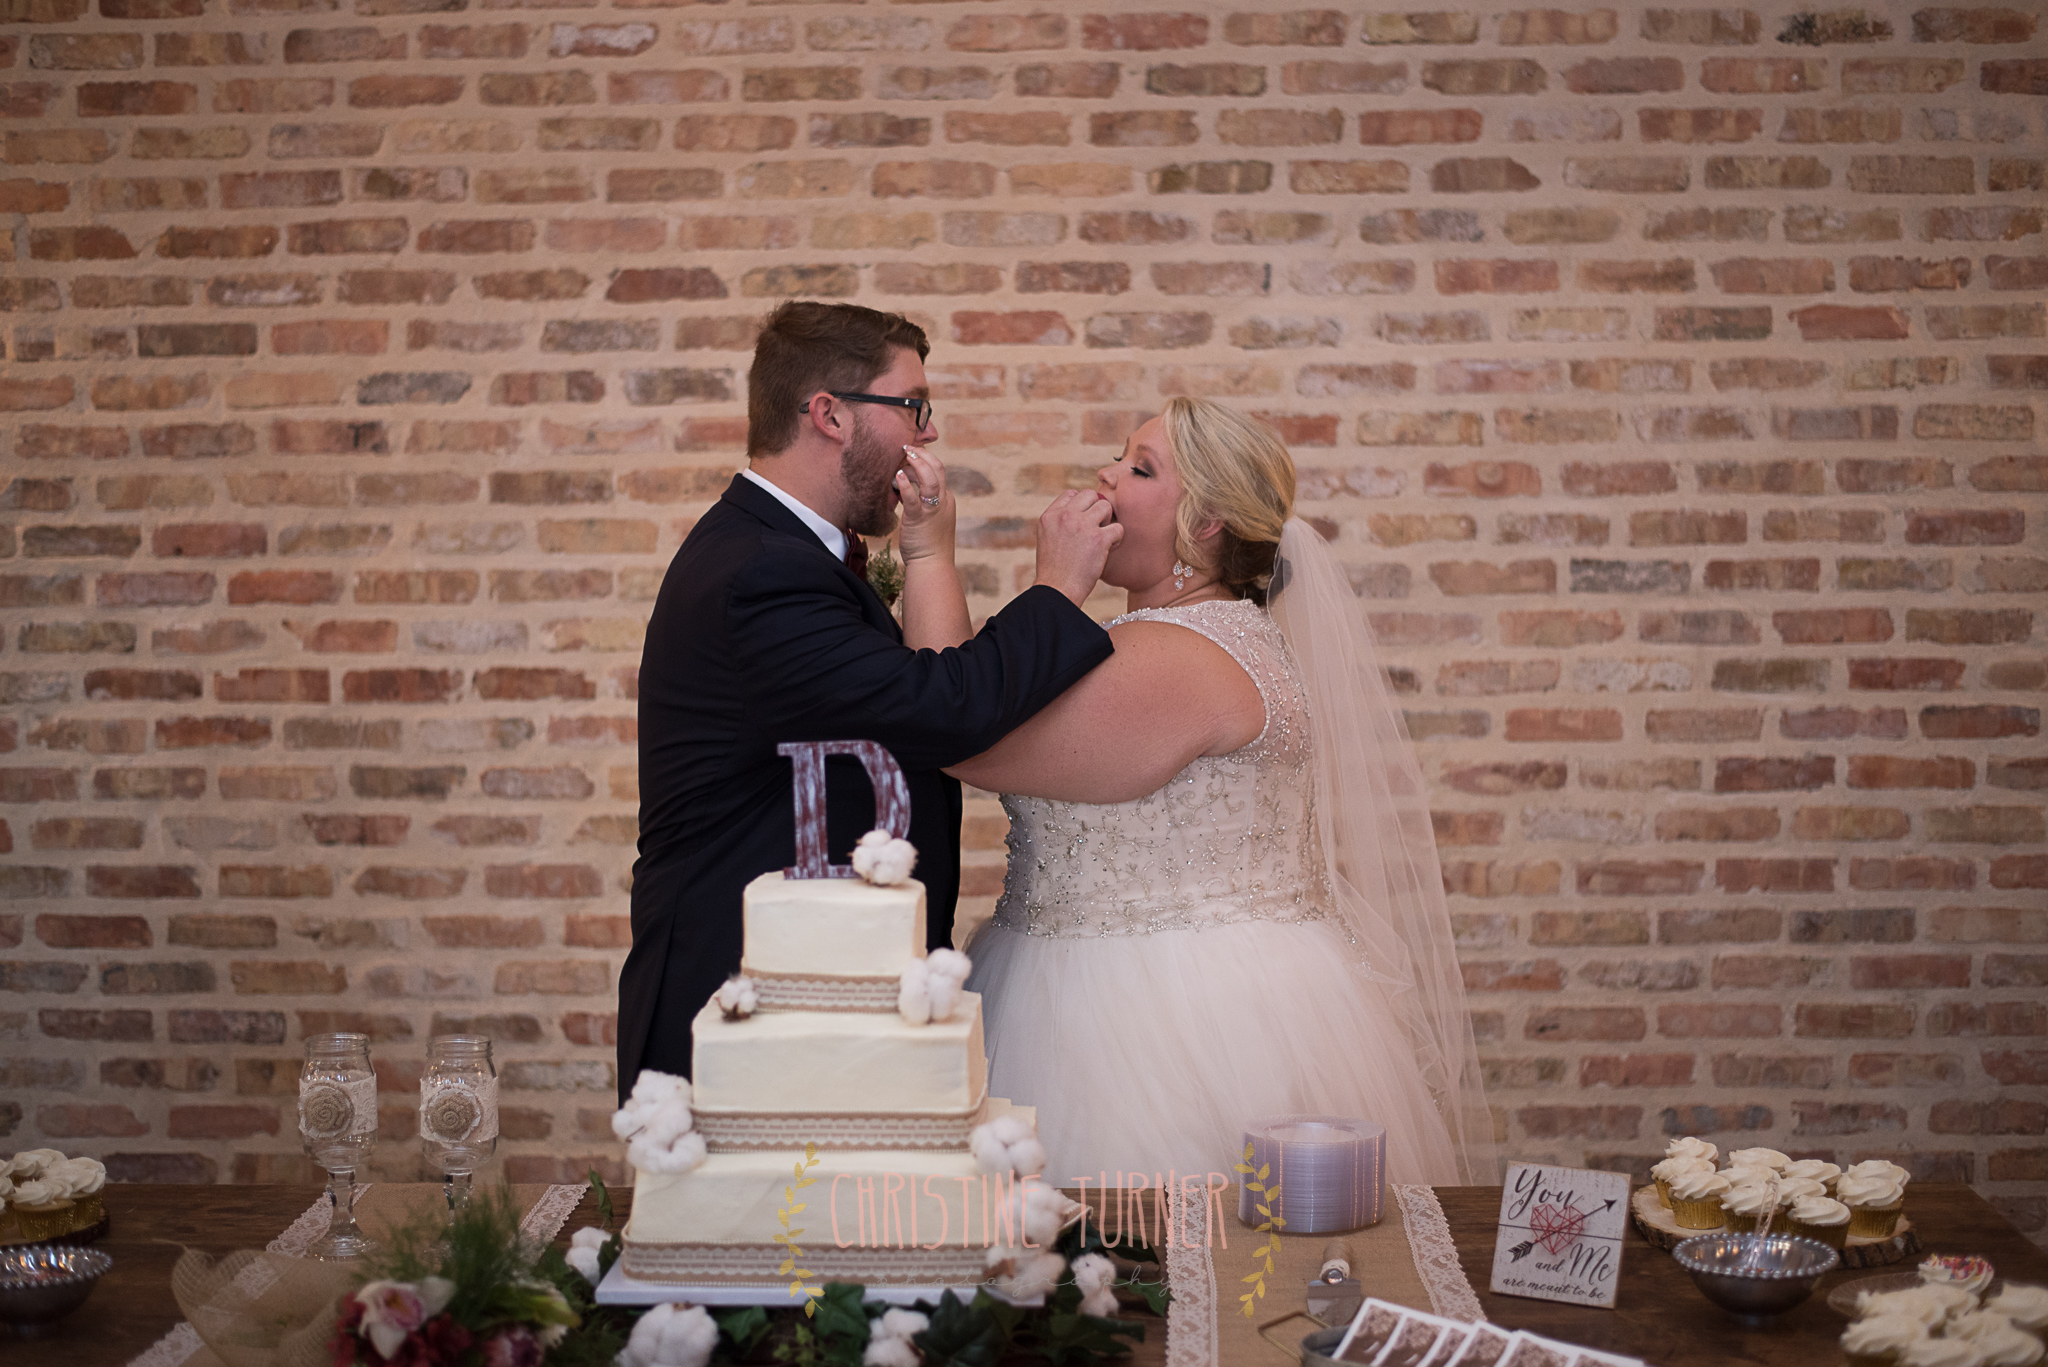 Duell Wedding (34 of 54)